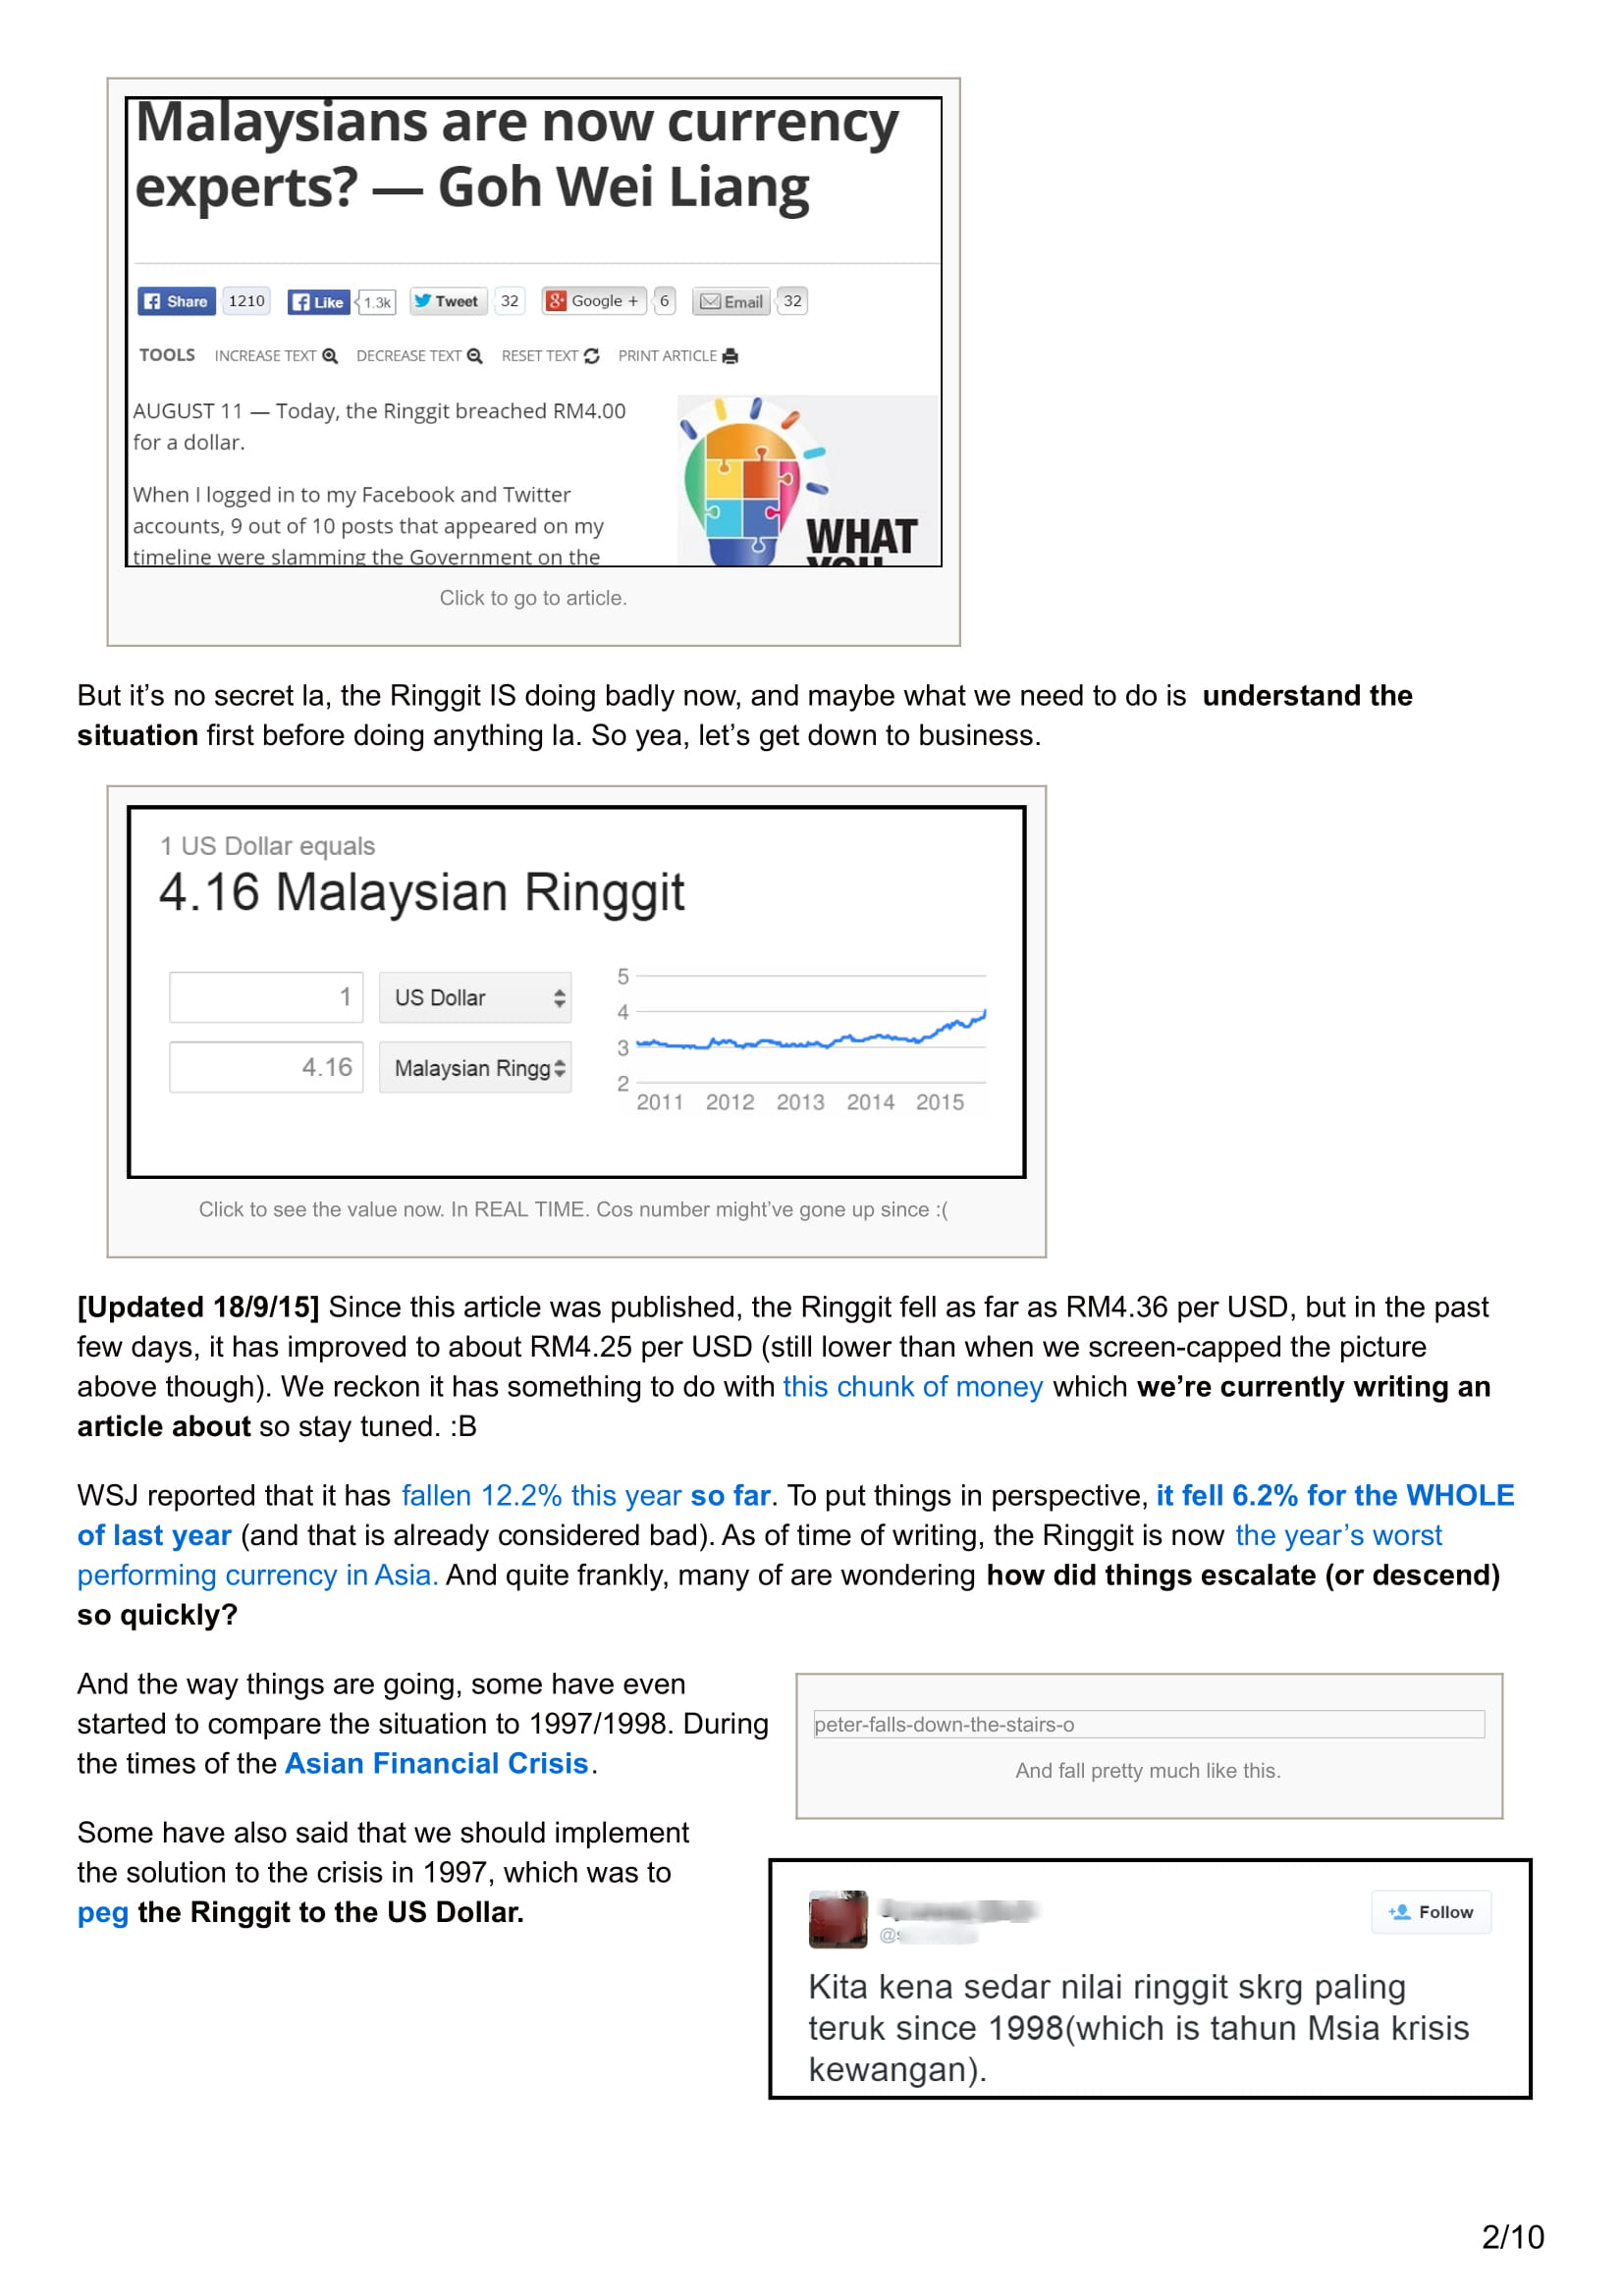 Media Coverage cilisos.my 4 reasons why pegging the Ringgit might not work like 1997 Update 9.pdf 23RD AUG 2015 02